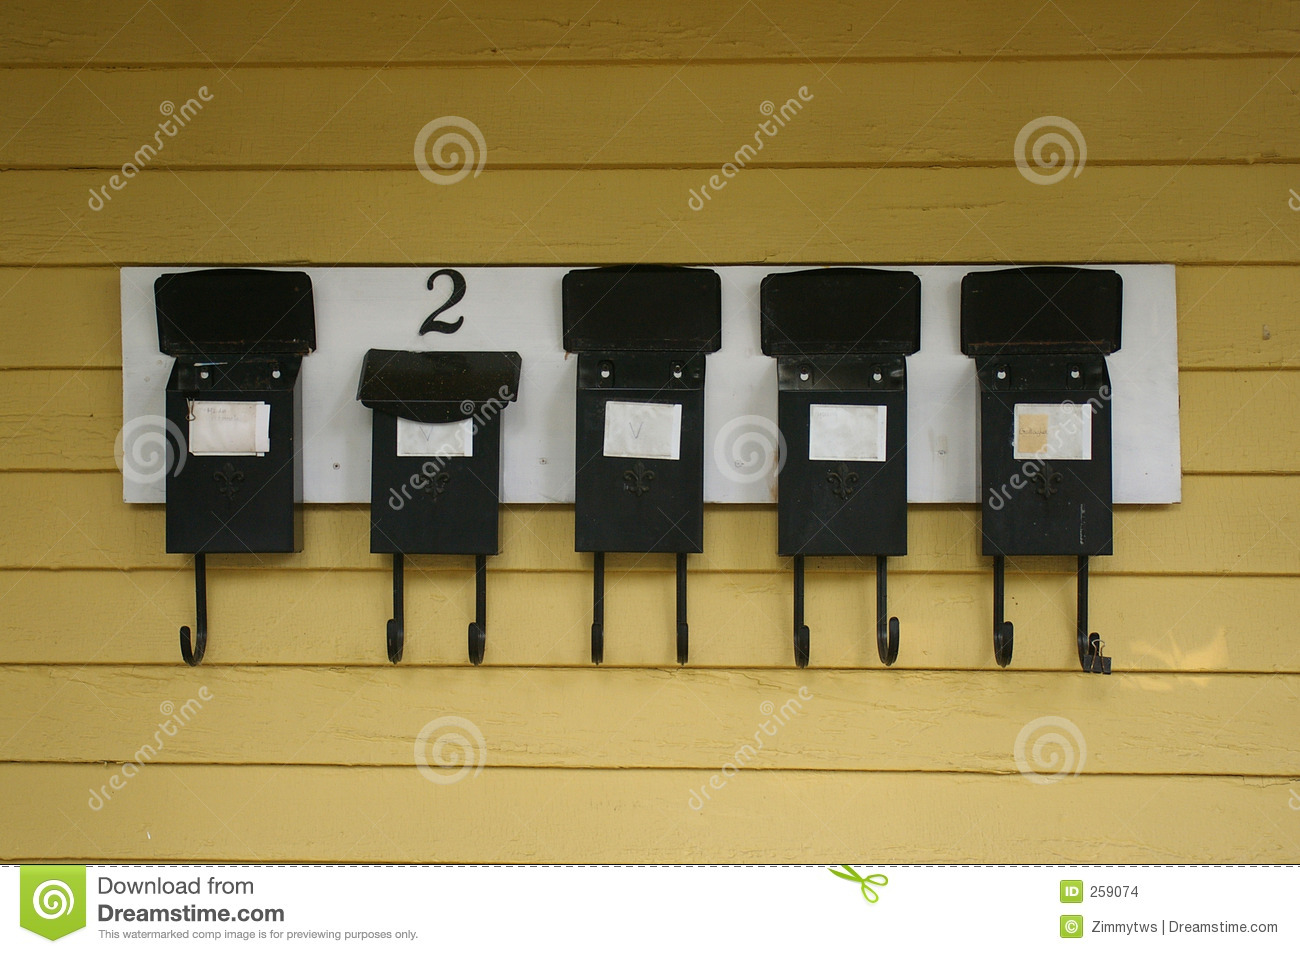 Apartment Mailboxes Stock Images - Image: 259074